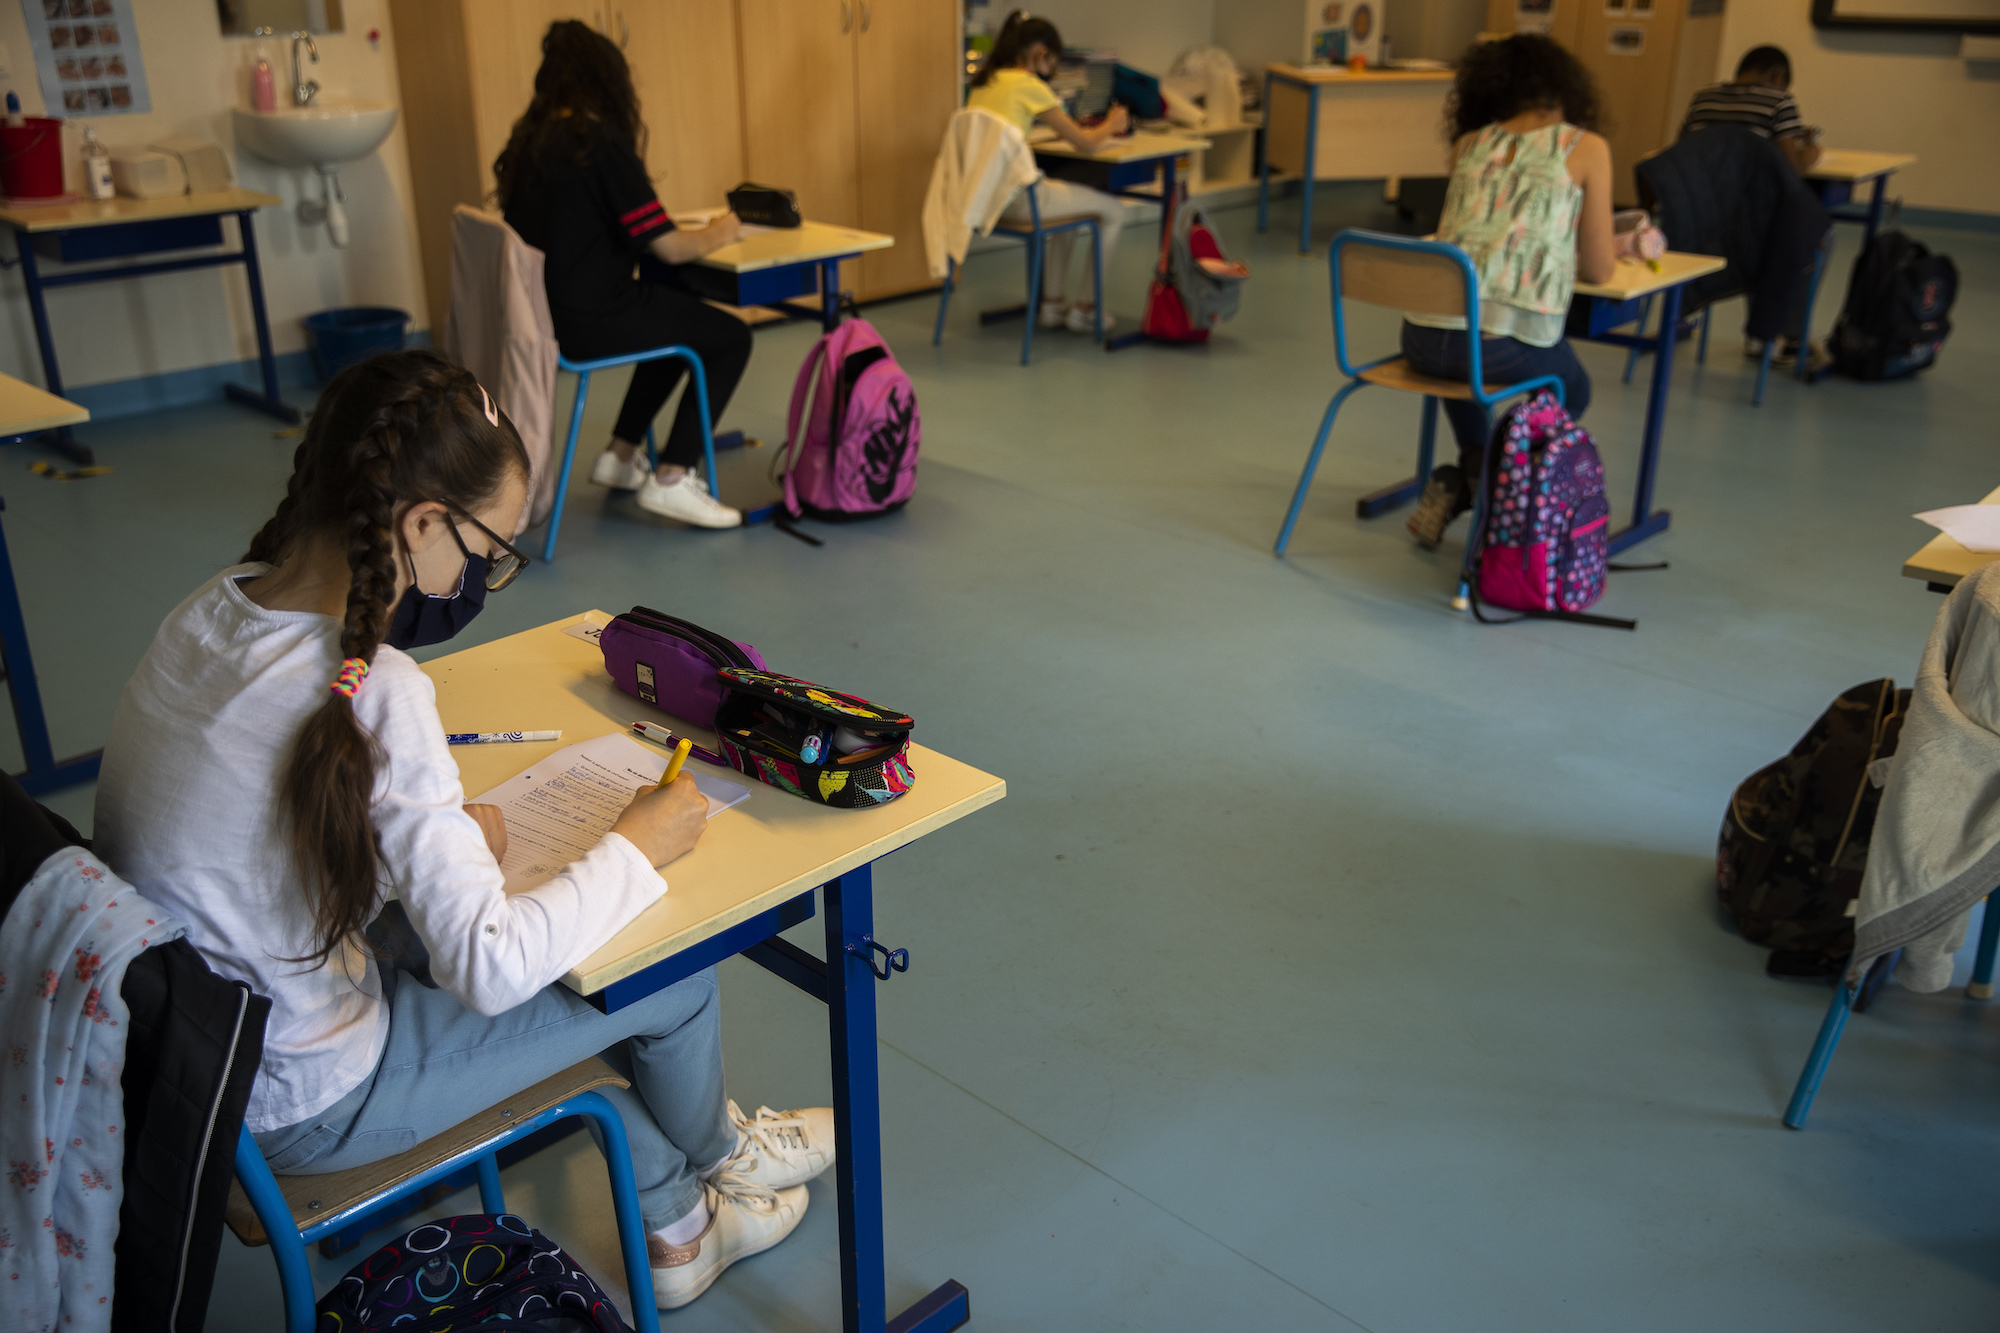 STUDENT VOICE: Once schools reopen fully, some lessons from distance learning will endure